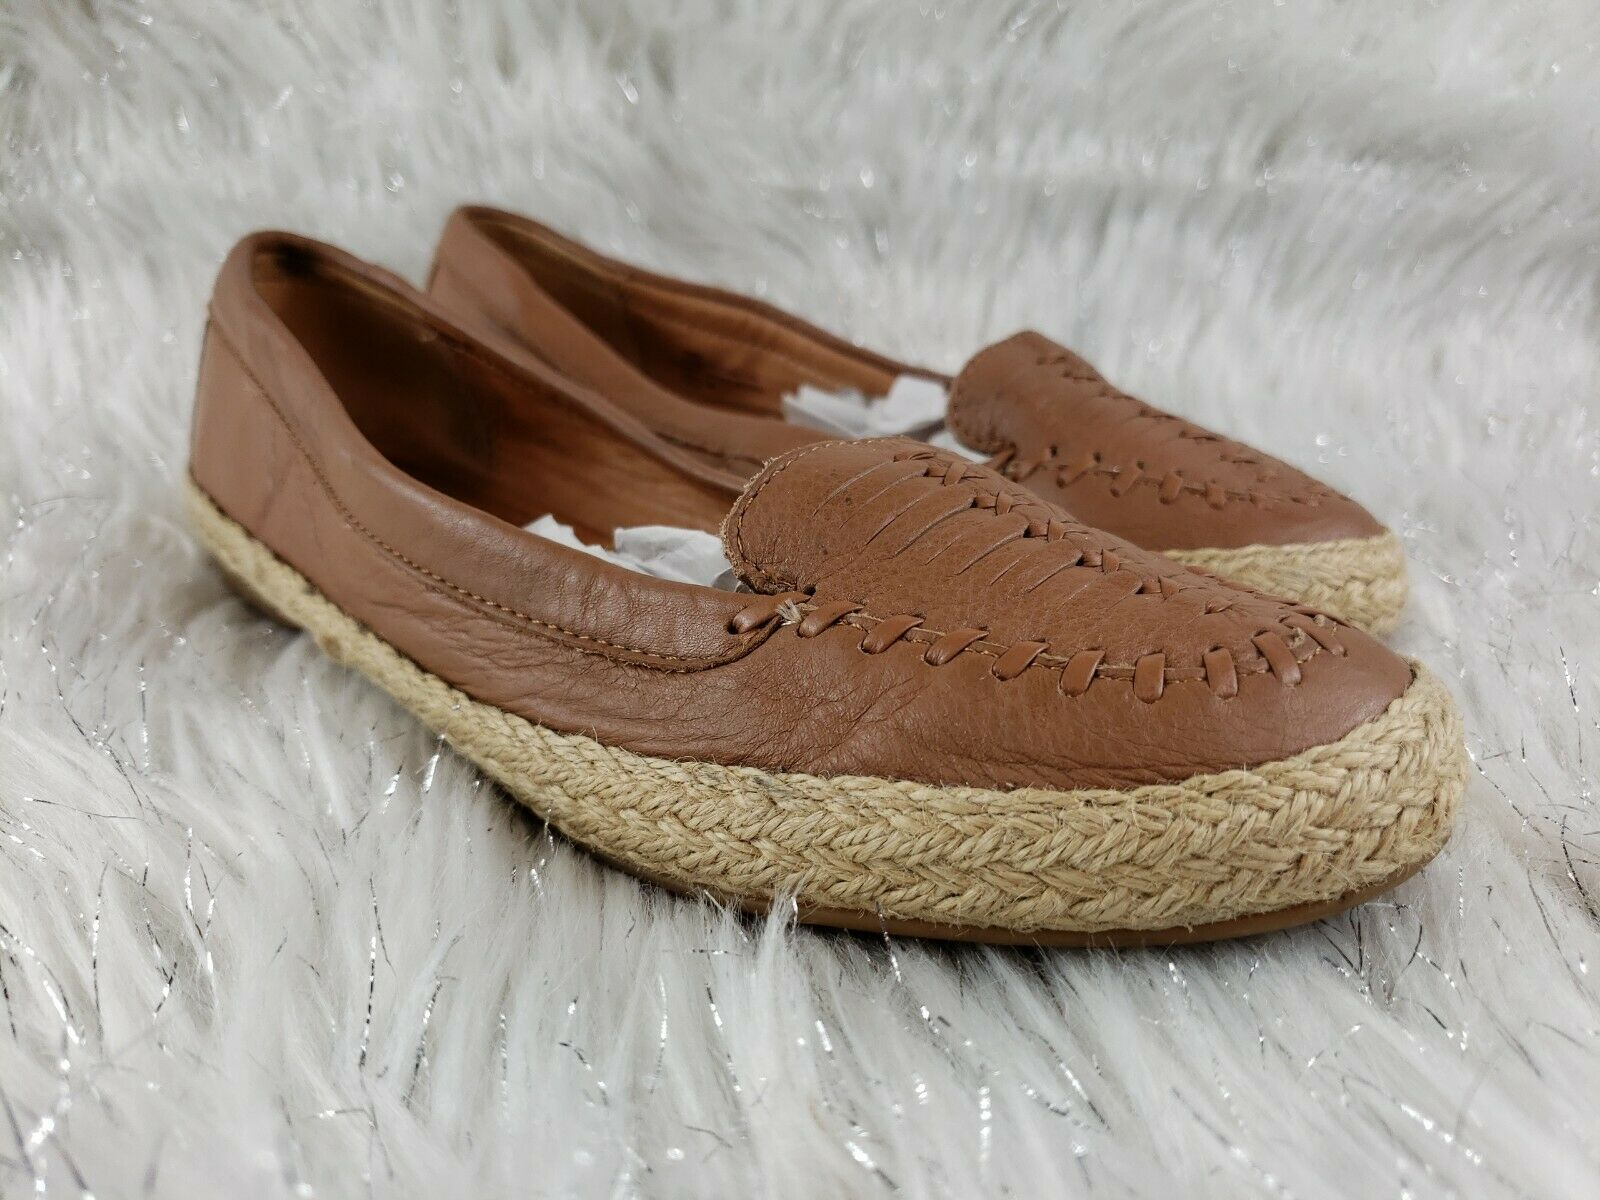 SOFFT Womens Brown Rope Casual Slip On Shoes Sz 7.5 GUC